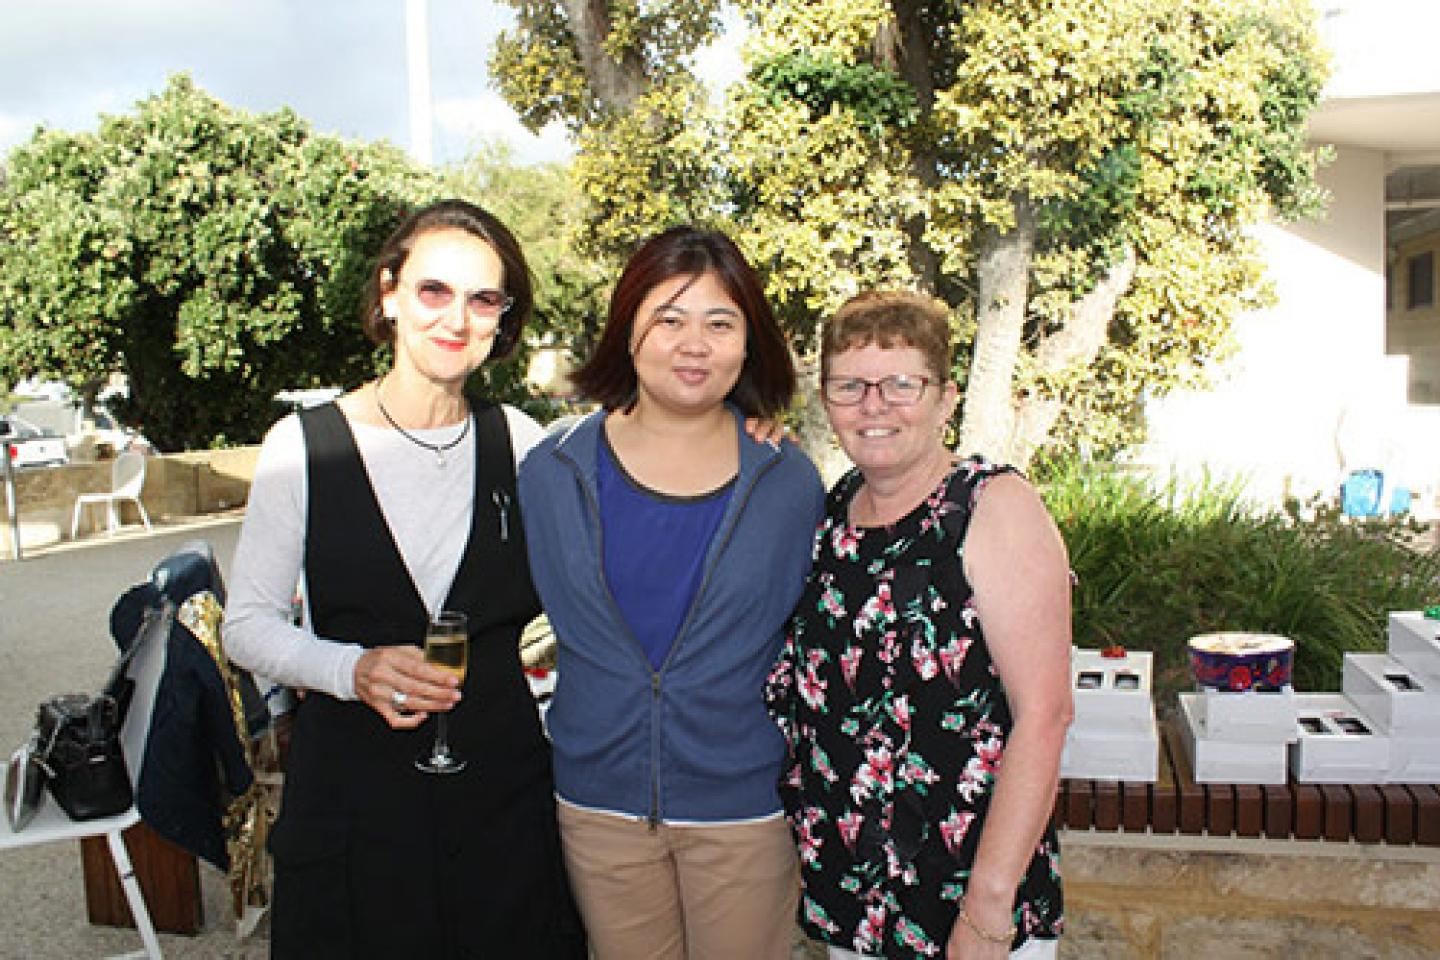 Josiane 'Josie' Sabouriaut (left), Mandy Tham and Kay Beacham.